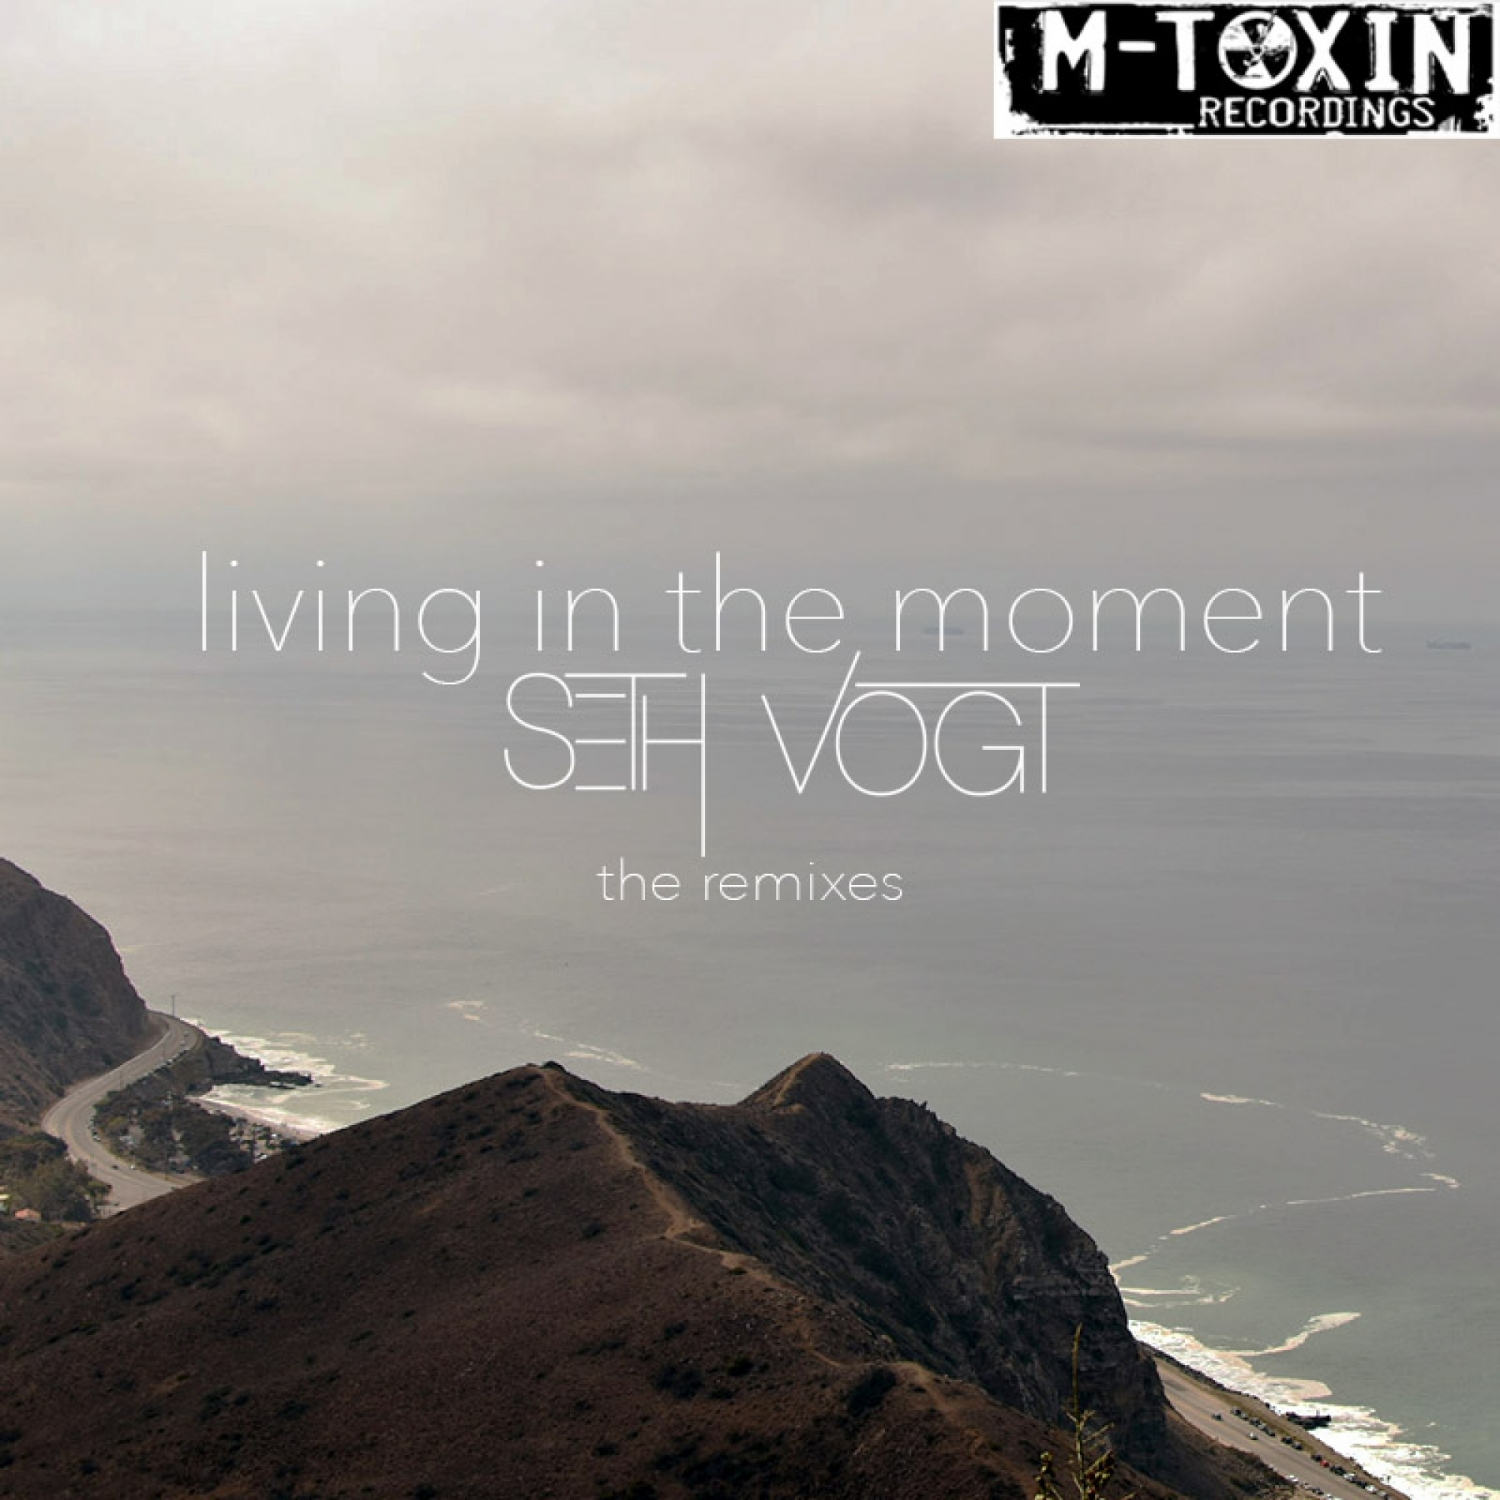 Seth Vogt  - Living In The Moment (Dylan.JK.Vogt Remix)